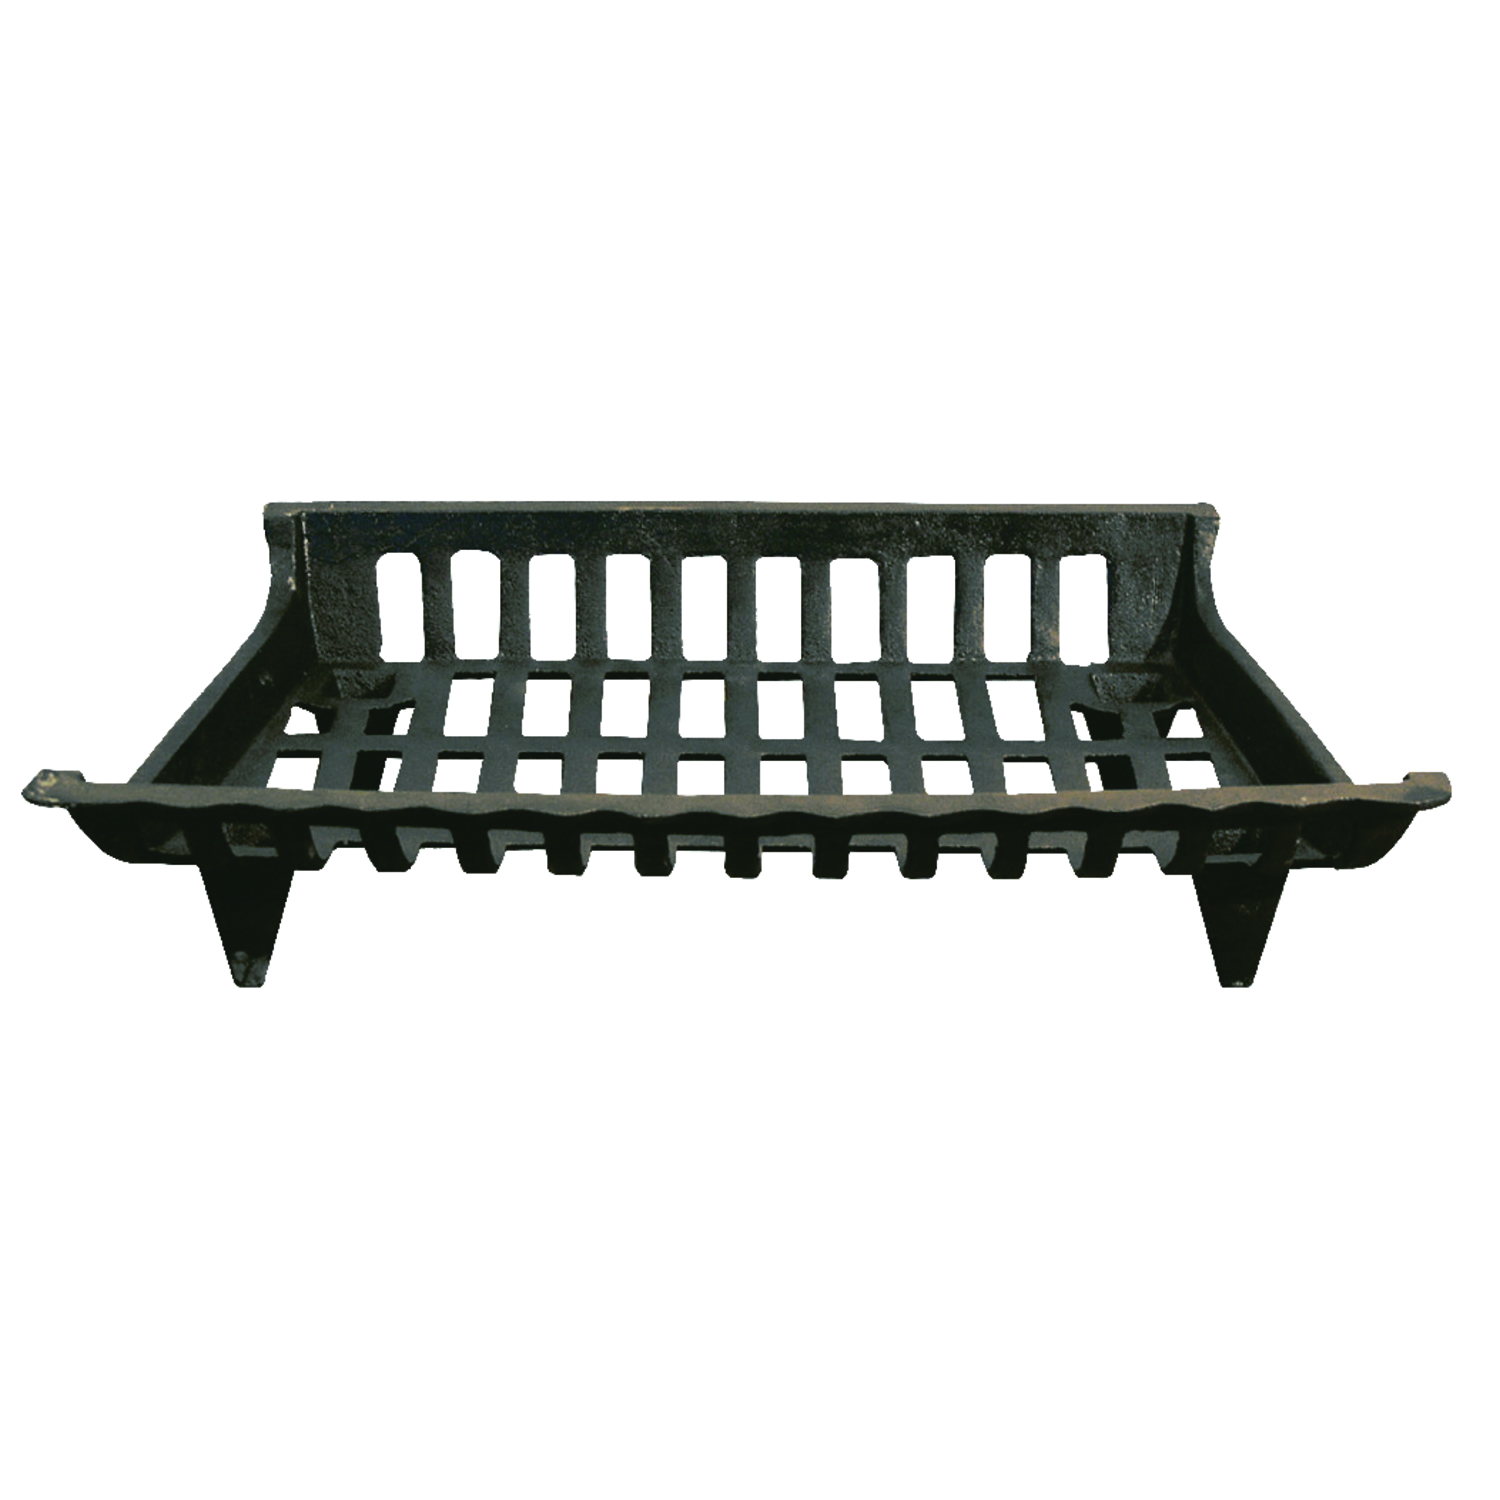 Ace Black Fireplace Grate Cast Iron